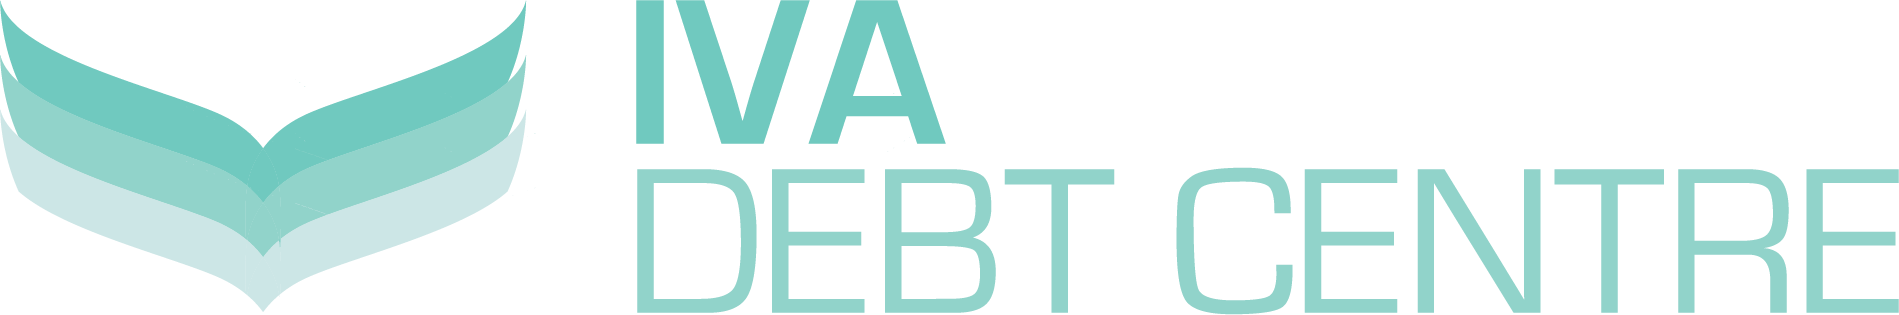 IVA Debt Centre